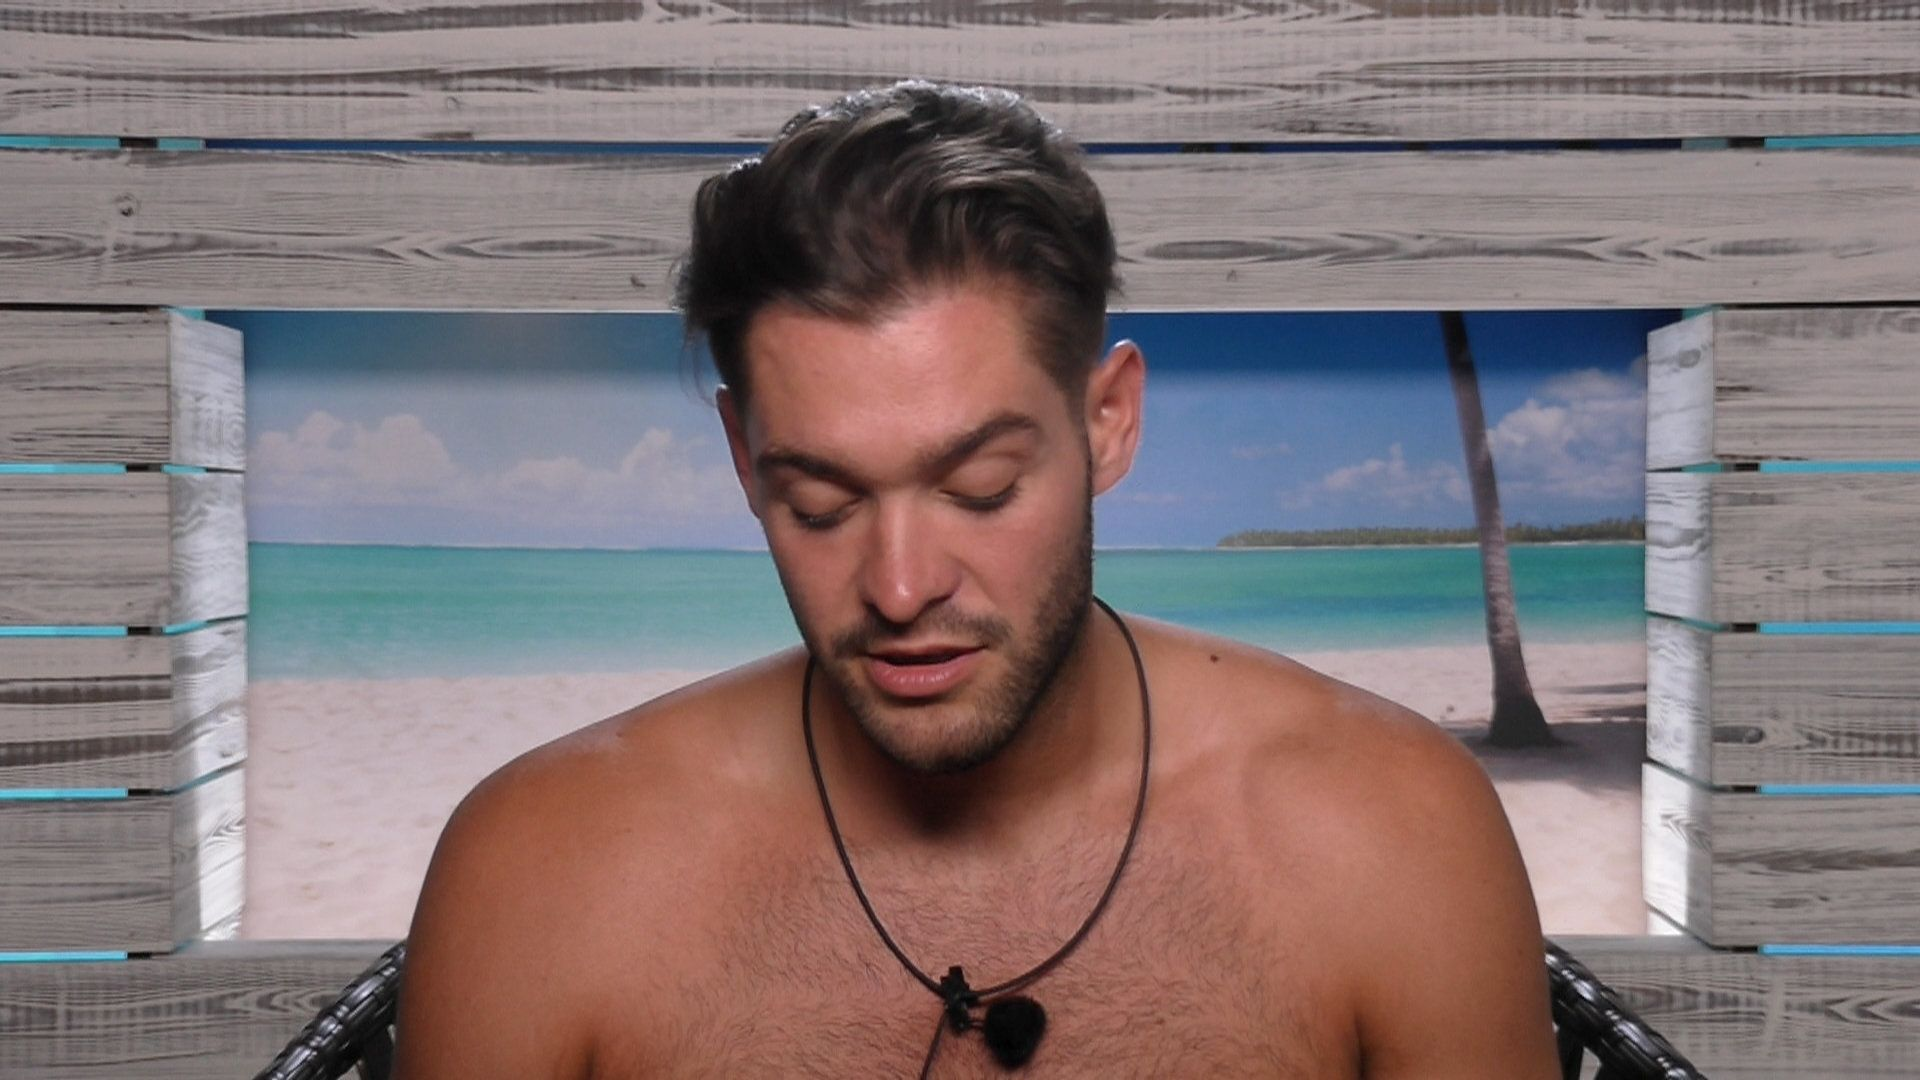 The Moment All 'Love Island' Fans Have Been Waiting For Is Finally